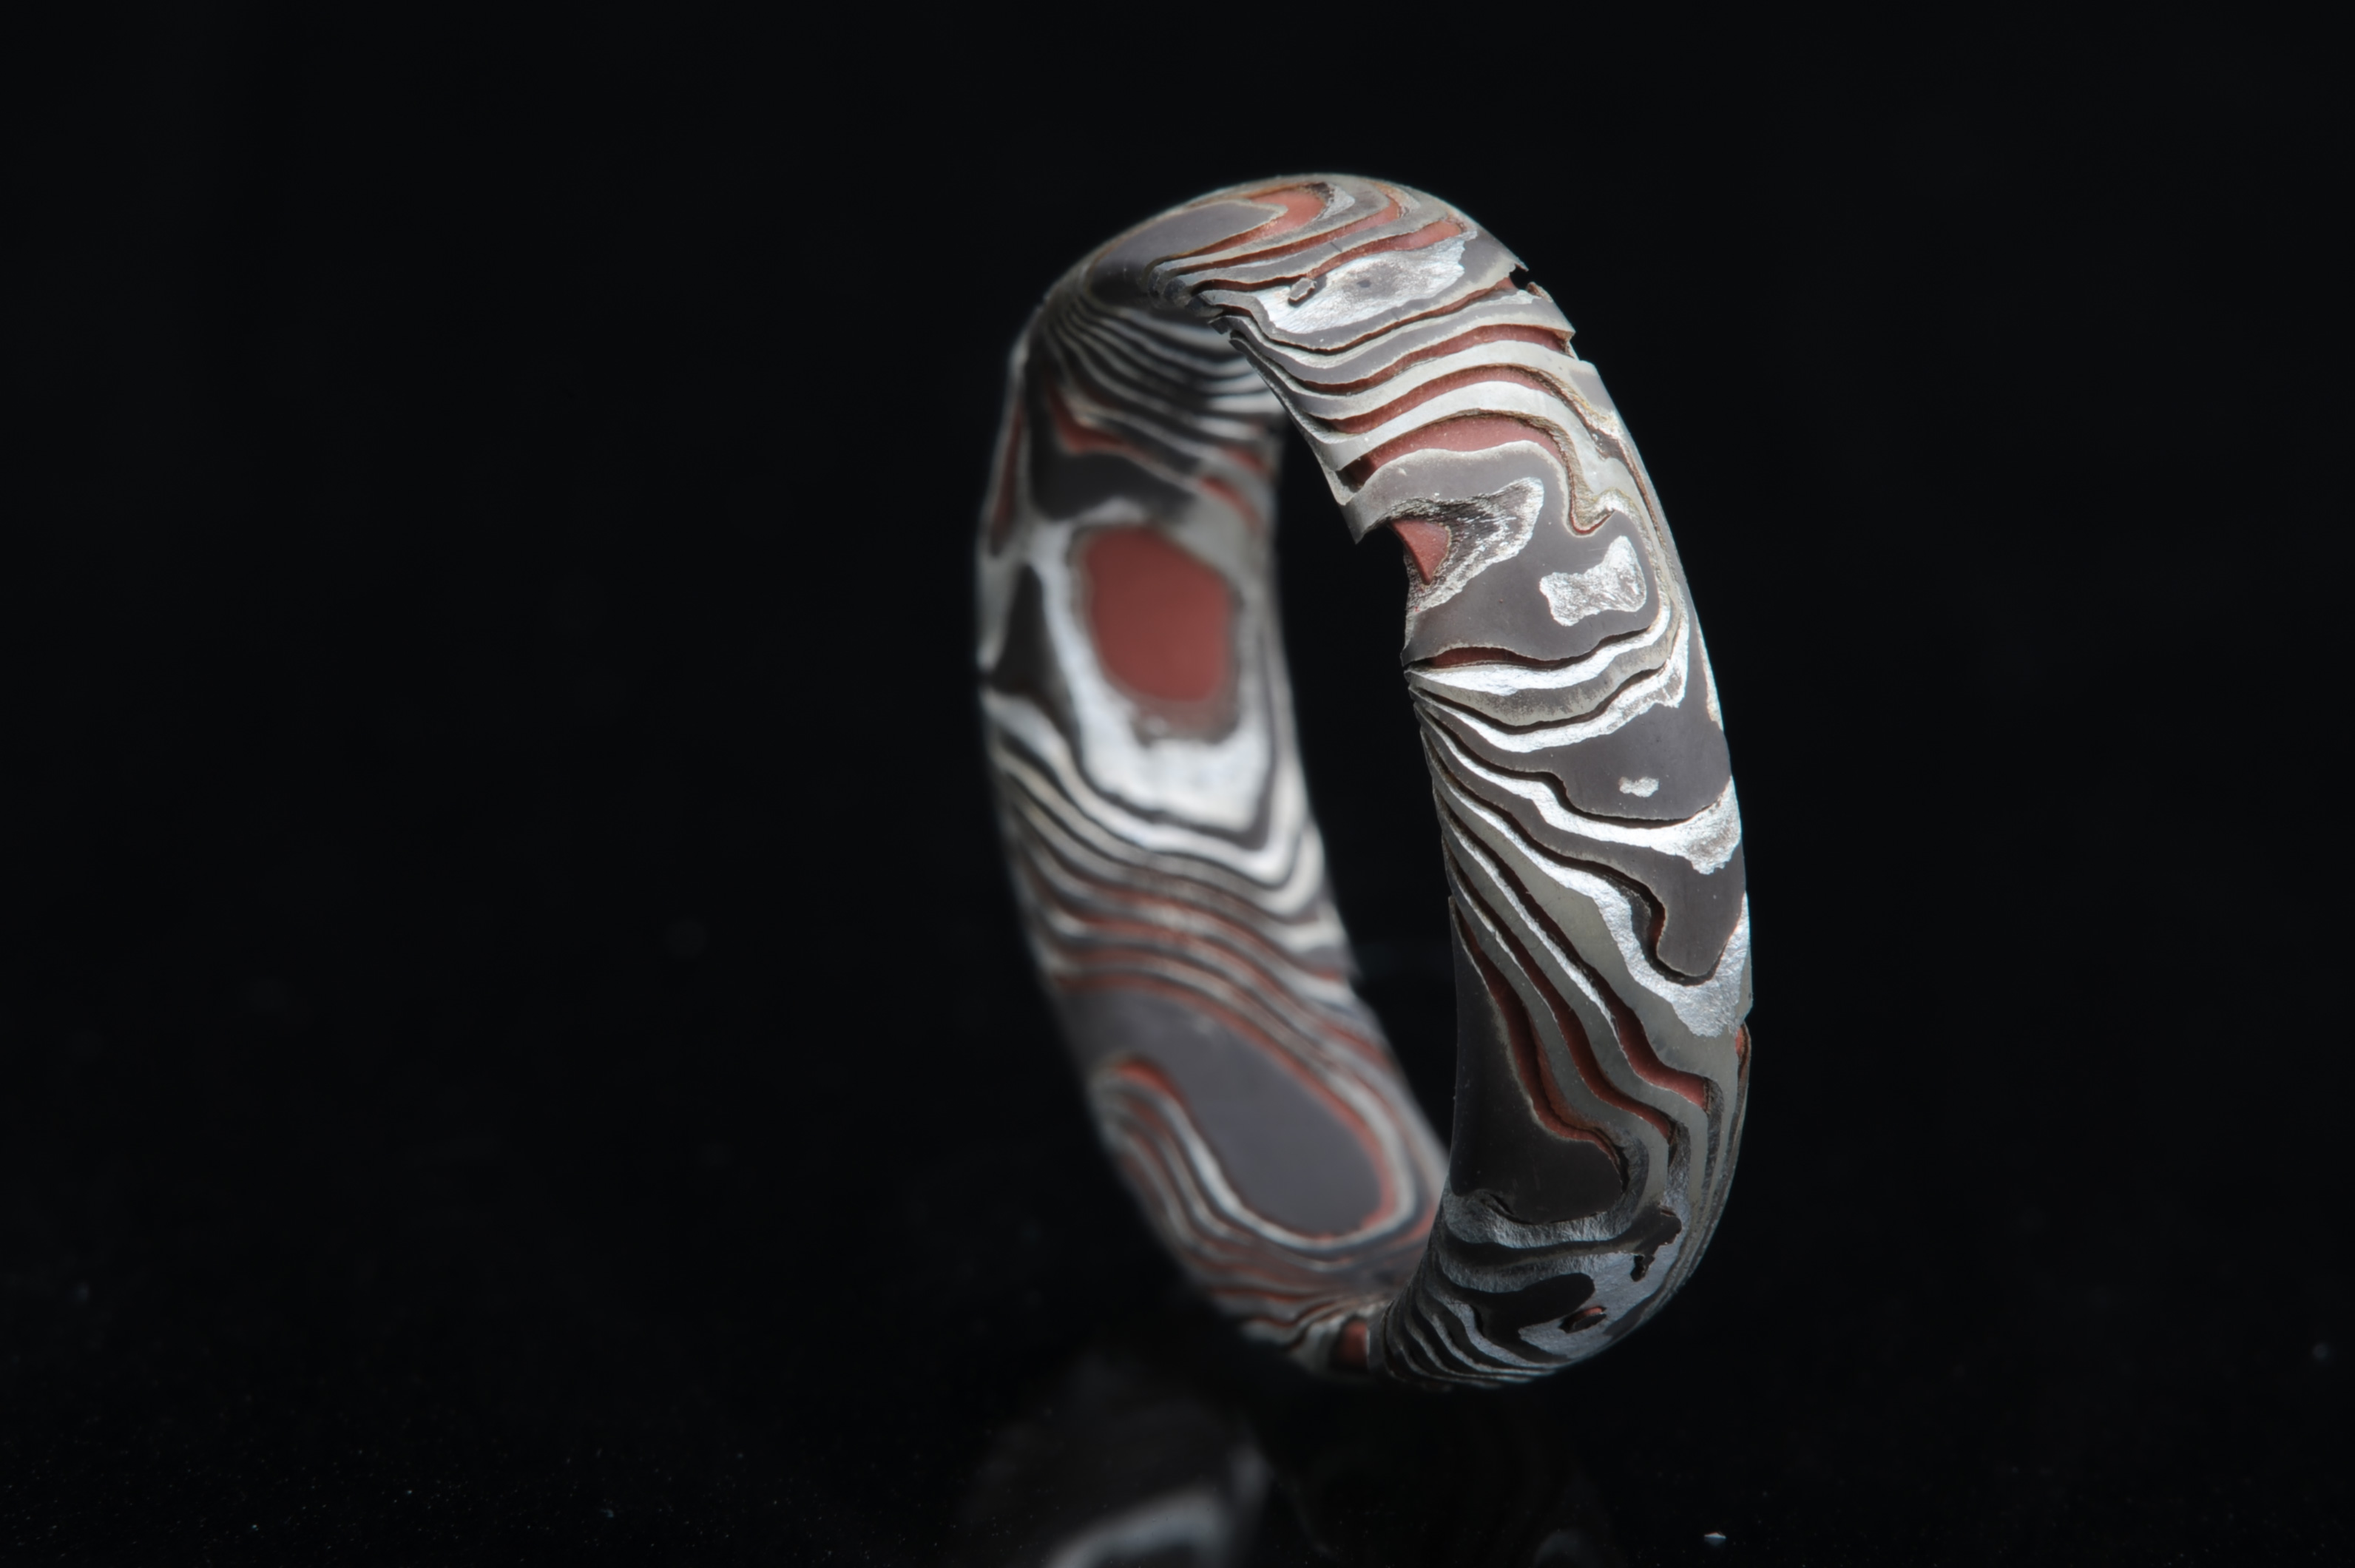 mokumegane cobalt ironwood purchase wedding wooden burl arizona rings desert wood wedgewood mokume ring gane